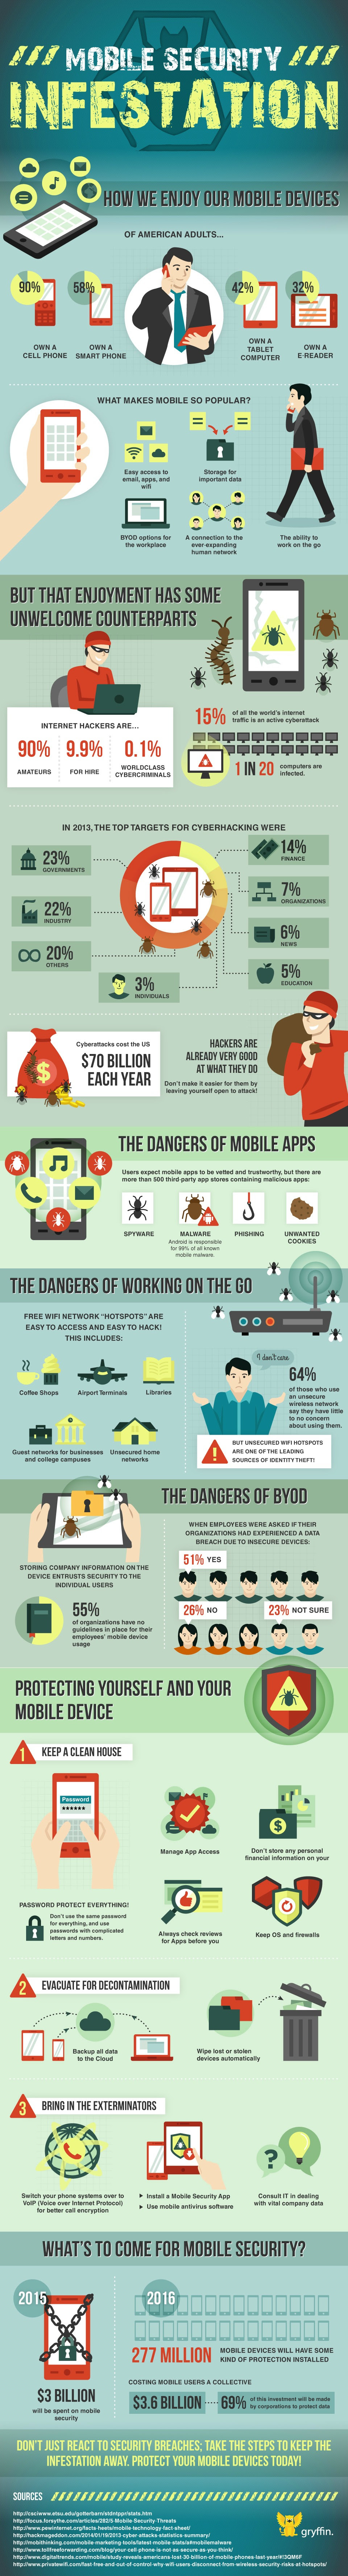 Infographic: Mobile Security Infestation